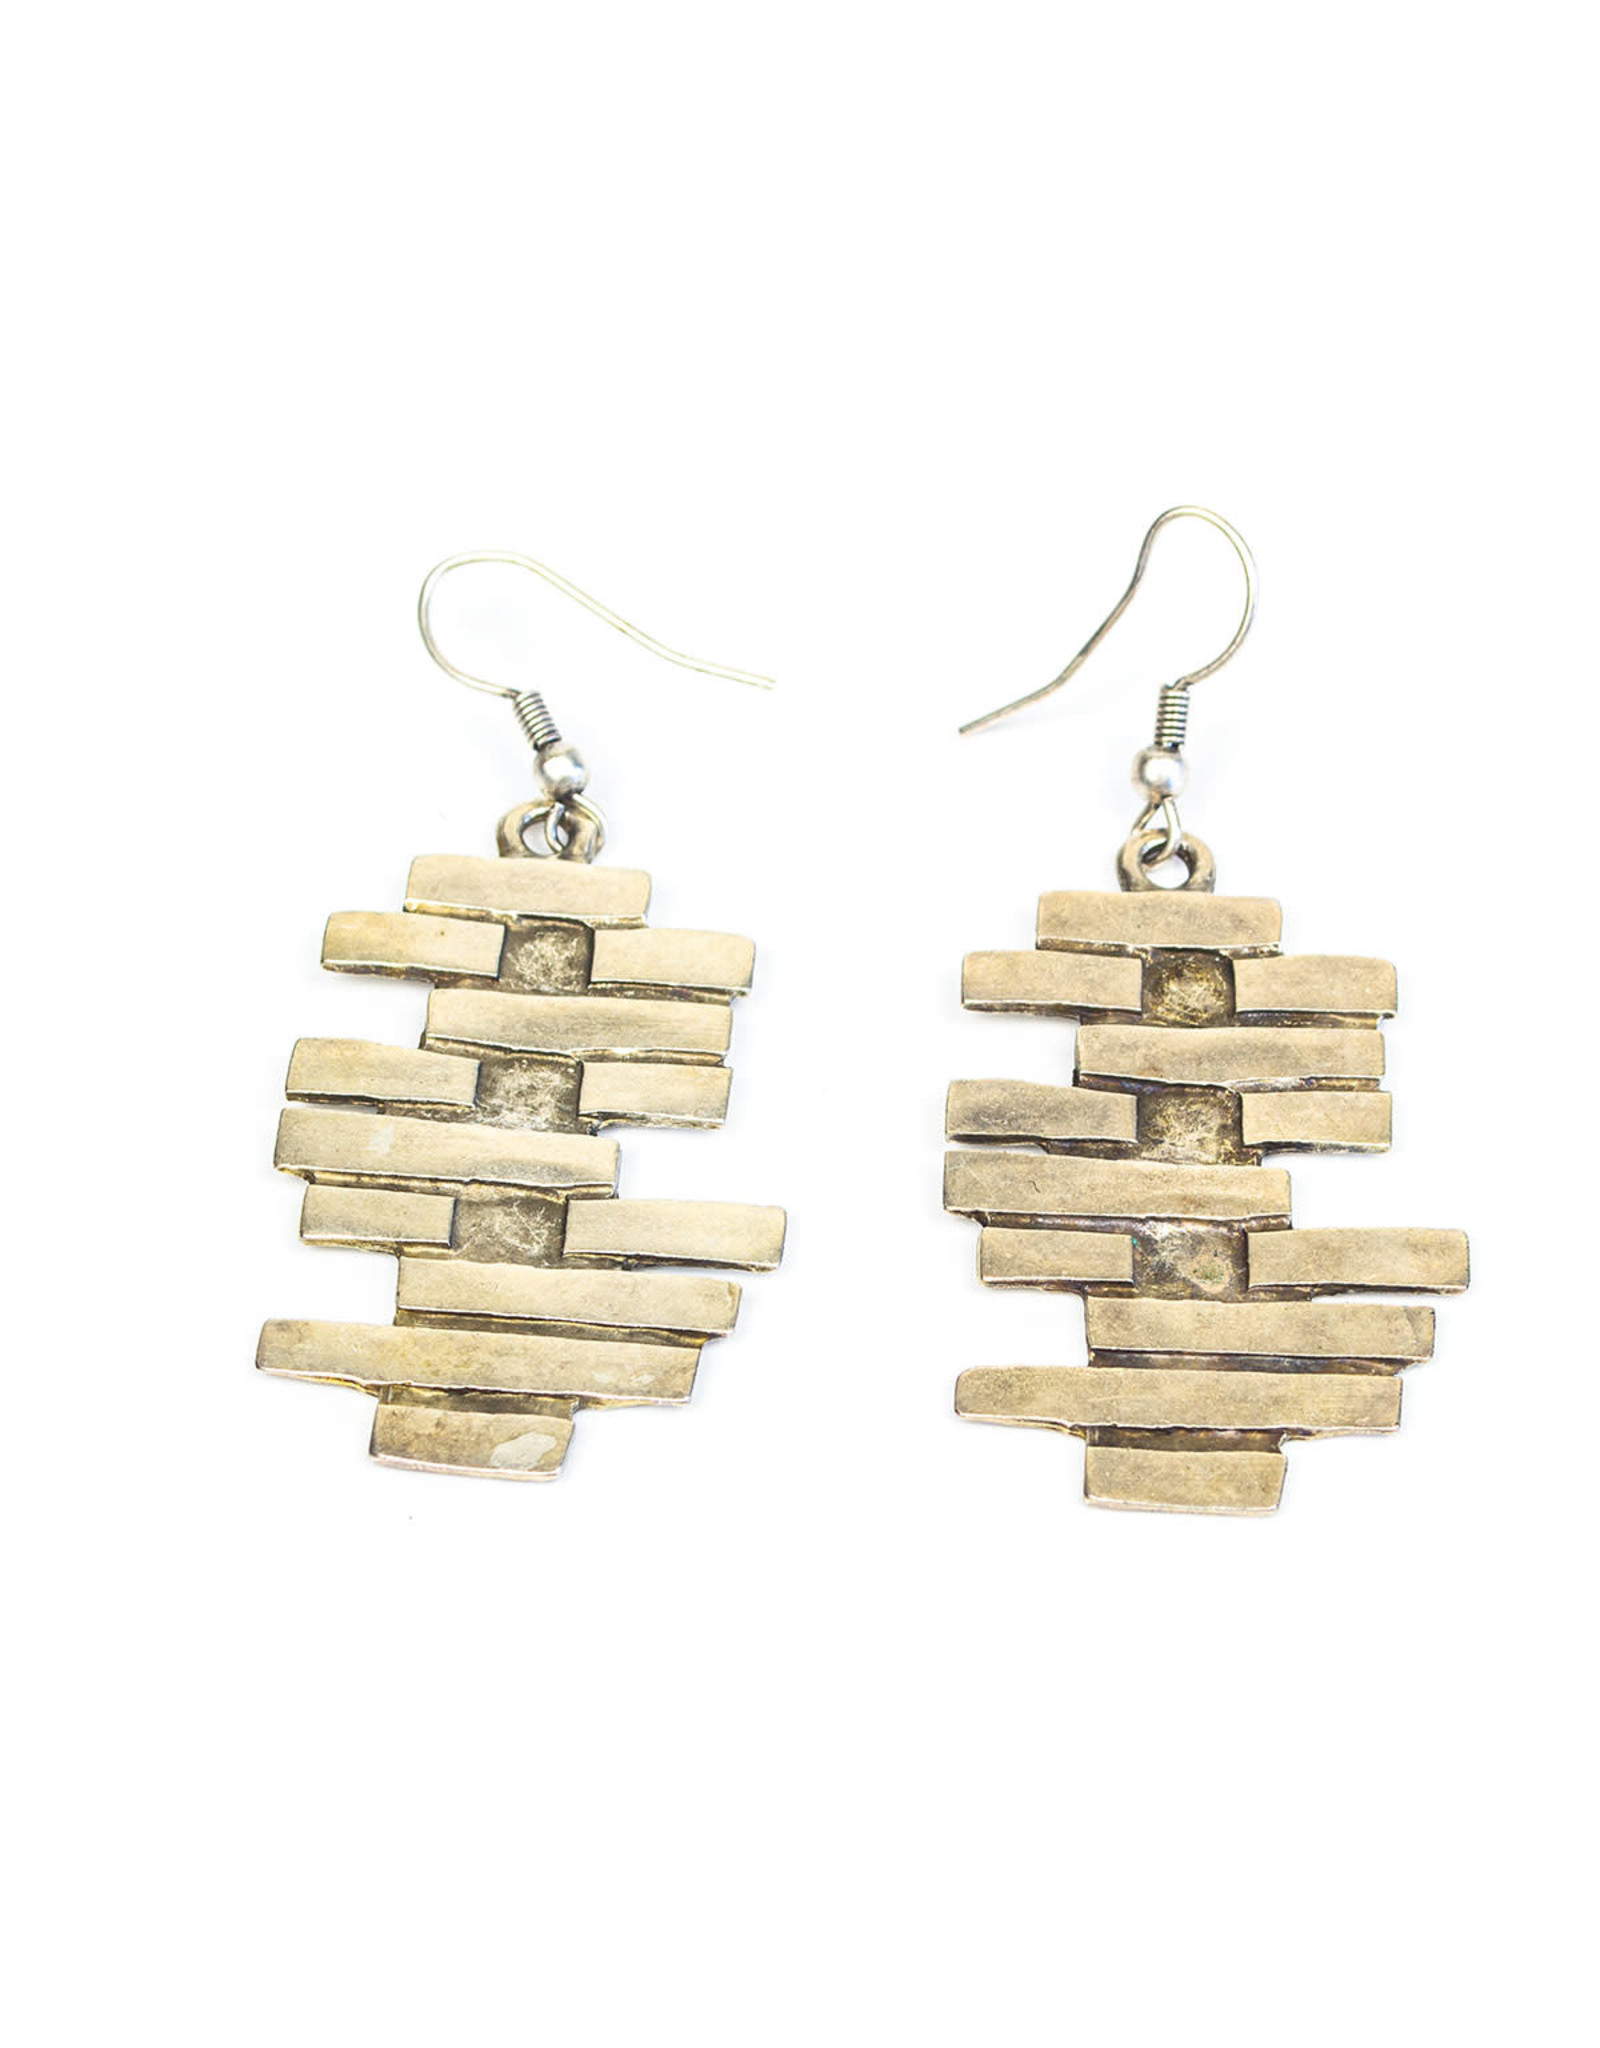 Divided Silver Plated Earrings, Turkey